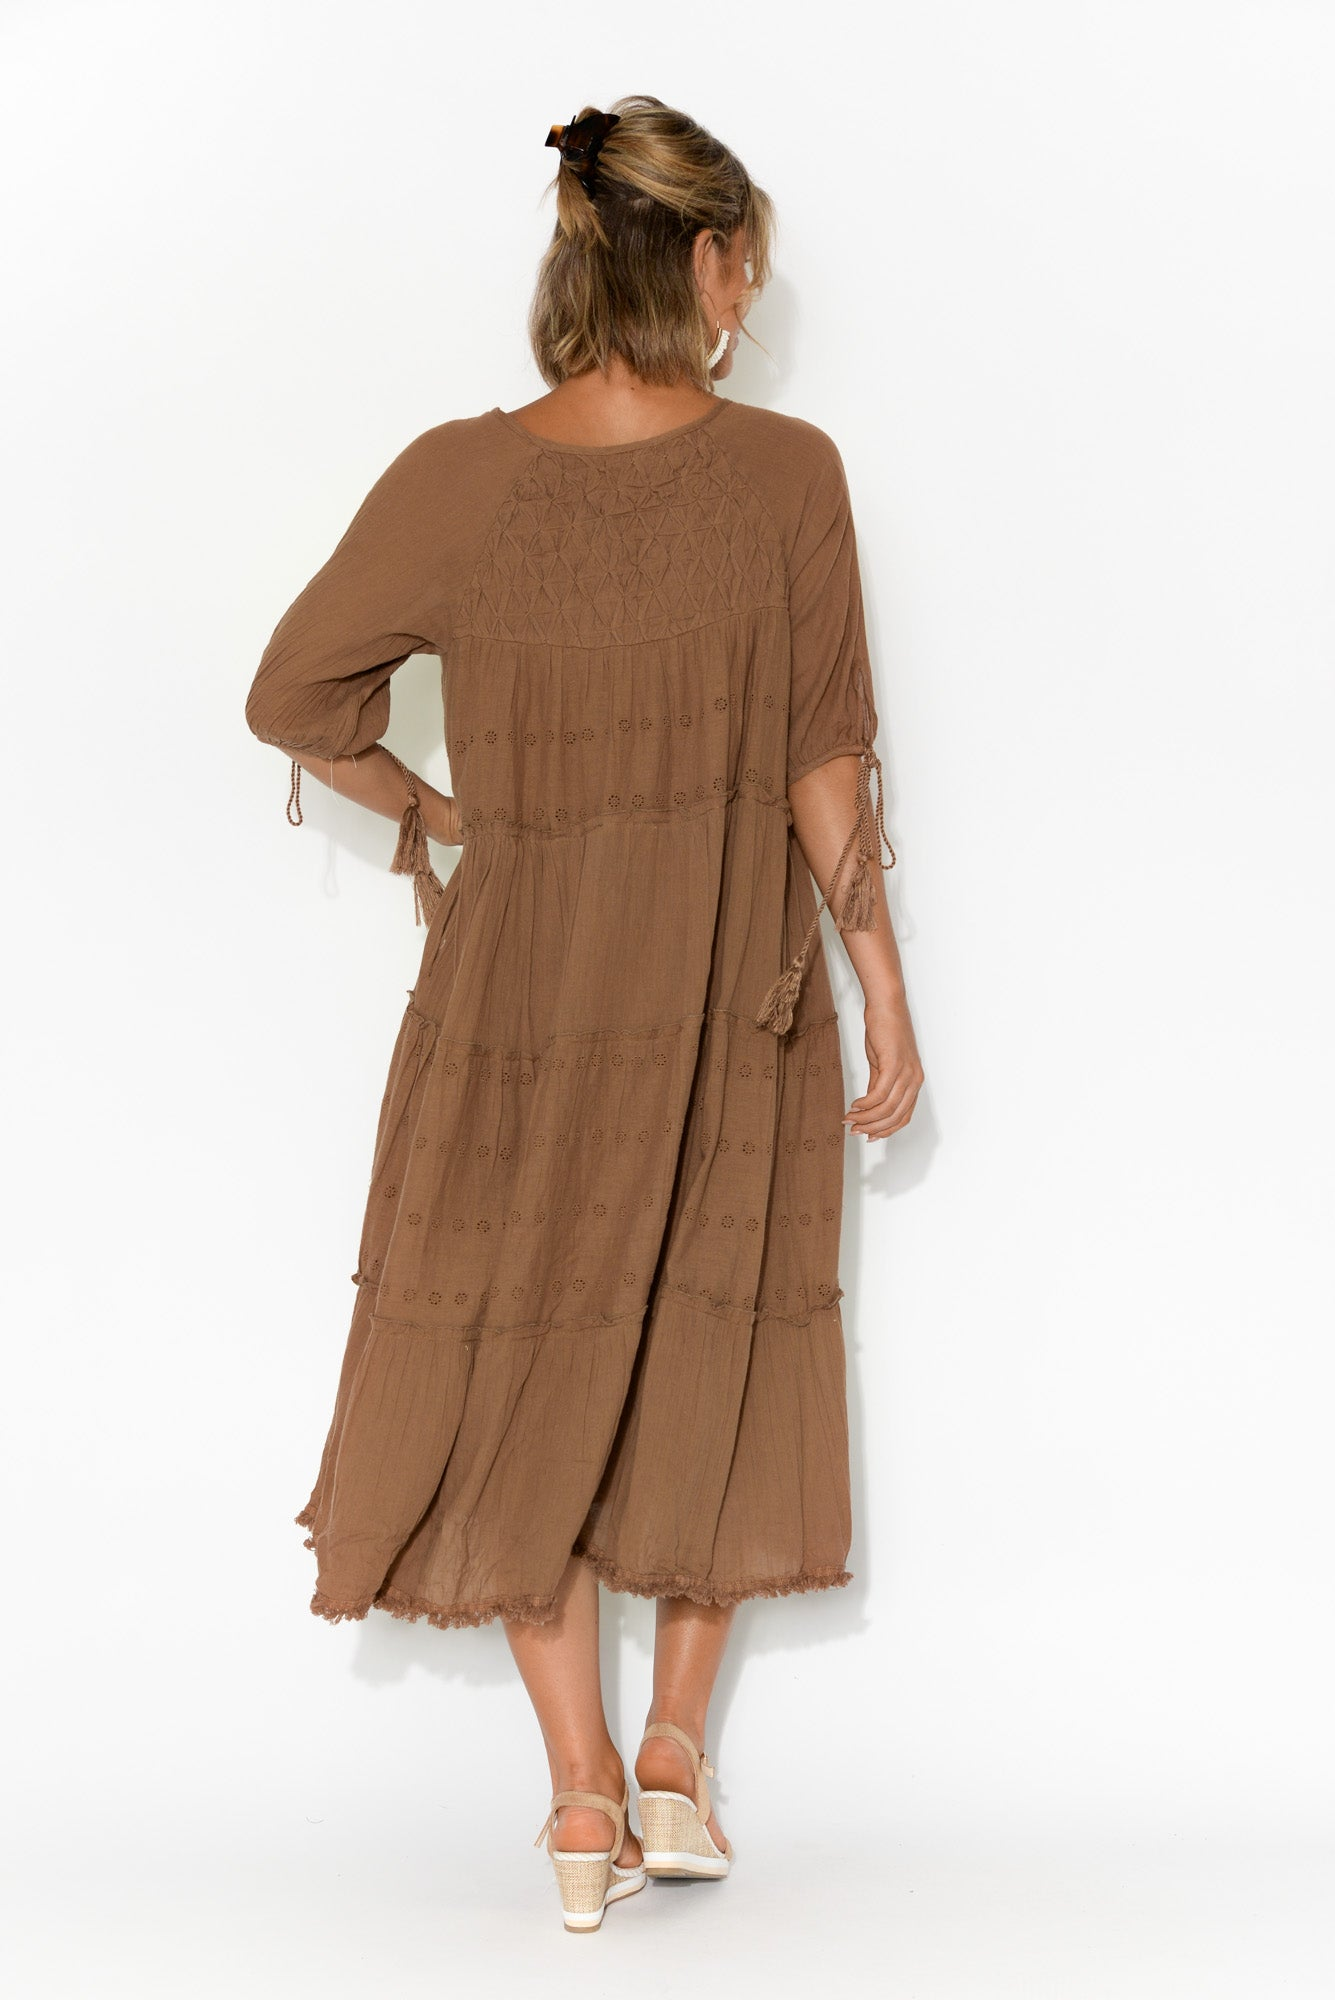 Judith Embroidered Brown Cotton Dress